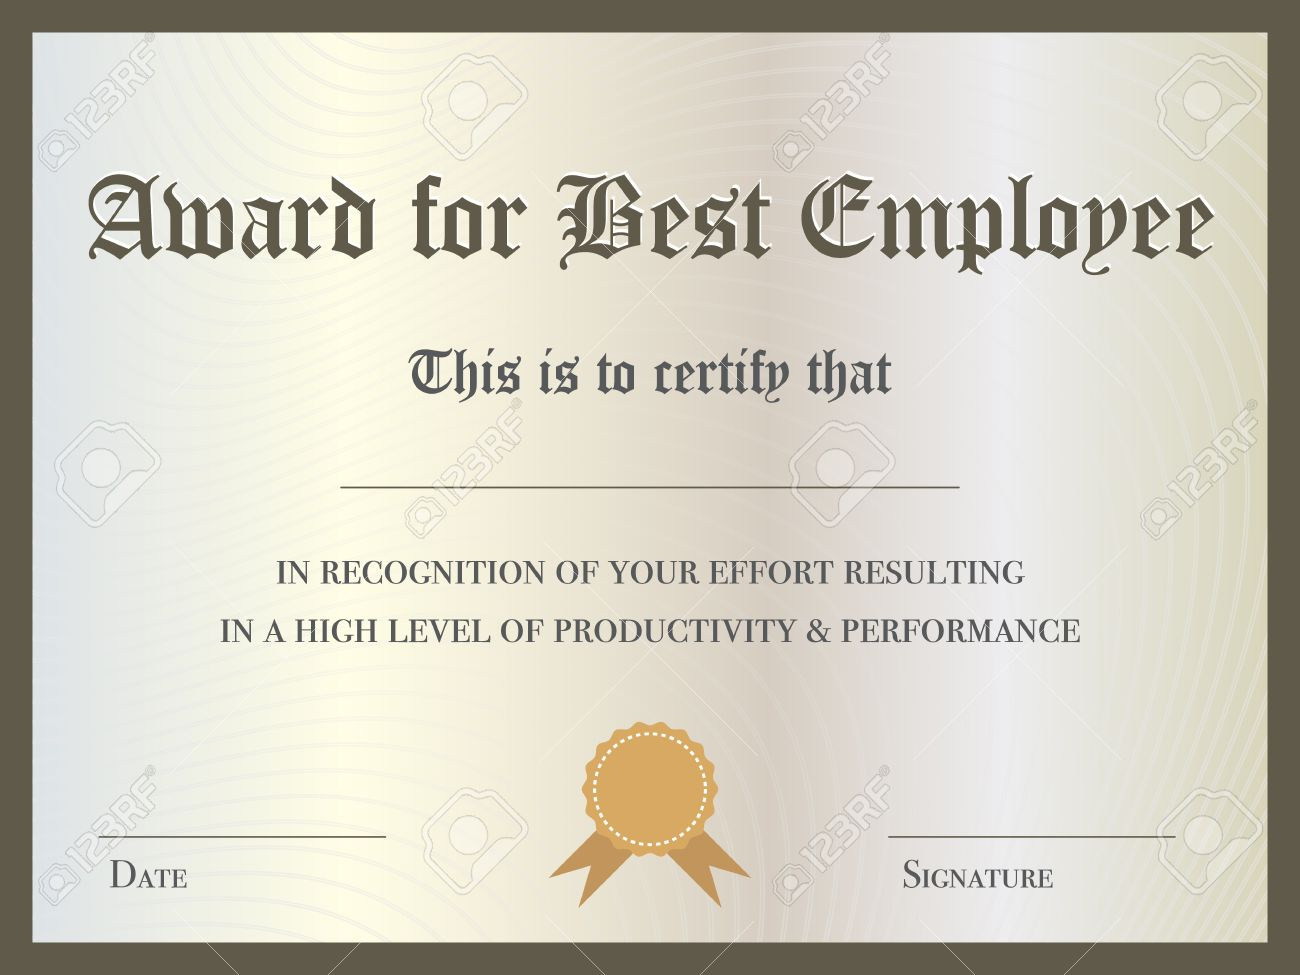 Employee of the month certificate template free bills to pay template employee month certificate template stock sample resumes for 35338389 illustration of certificate award for best employee yadclub Image collections